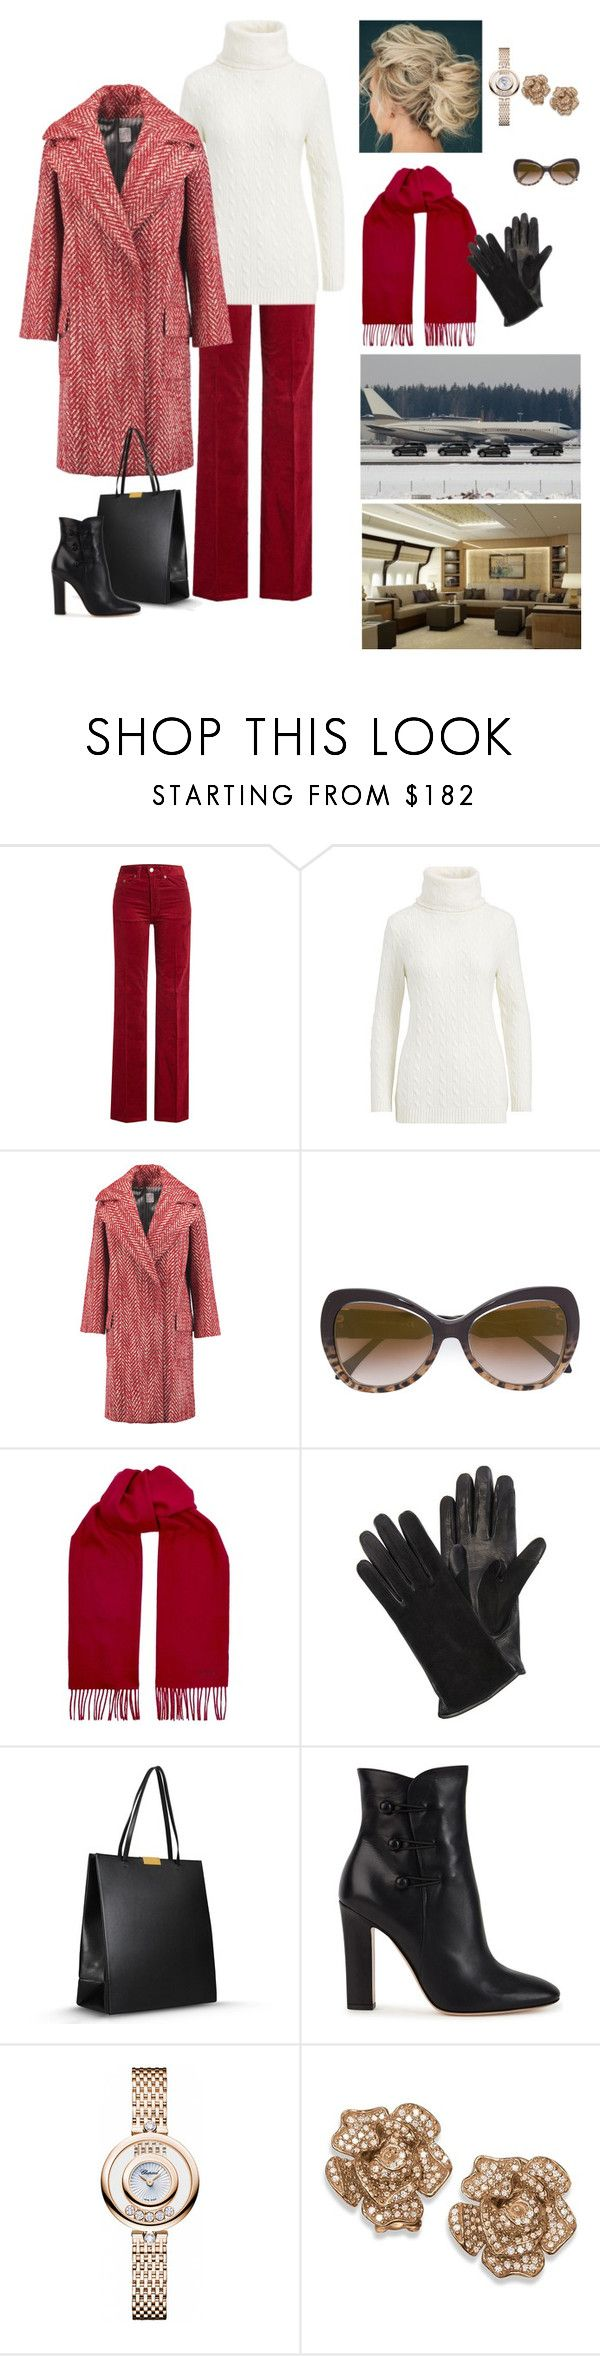 """""""Queen Rose and King Nicolas of Enchanted Kingdom leave for Anadalasi to participate in the birthday celebrations of the Crown Princess of Anadalasi, wife of the Crown Prince of Anadalasi (elder brother of Queen Rose)"""" by hm-queen-rose ❤ liked on Polyvore featuring Marc Jacobs, Ralph Lauren, Stella Jean, Roberto Cavalli, Paul Smith, Lanvin, STELLA McCARTNEY, Gianvito Rossi, Chopard and Effy Jewelry"""